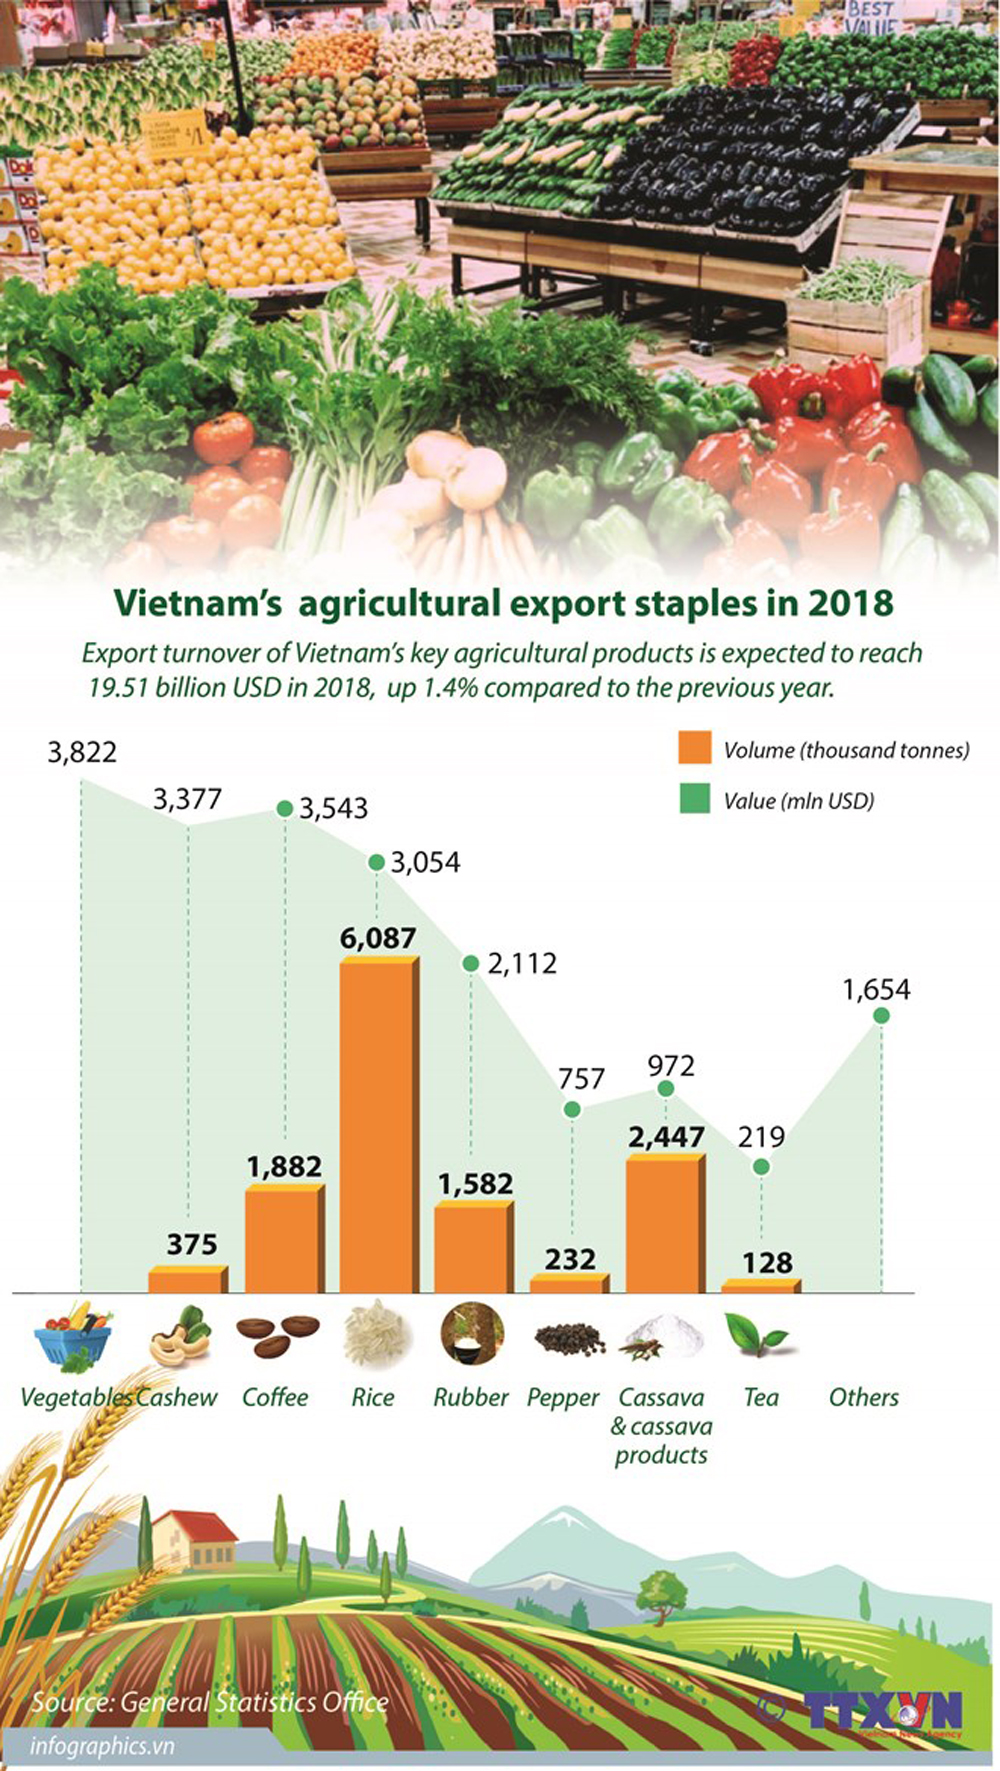 Vietnam, agricultural export staples, 2018, farm produce, key products, agricultural products